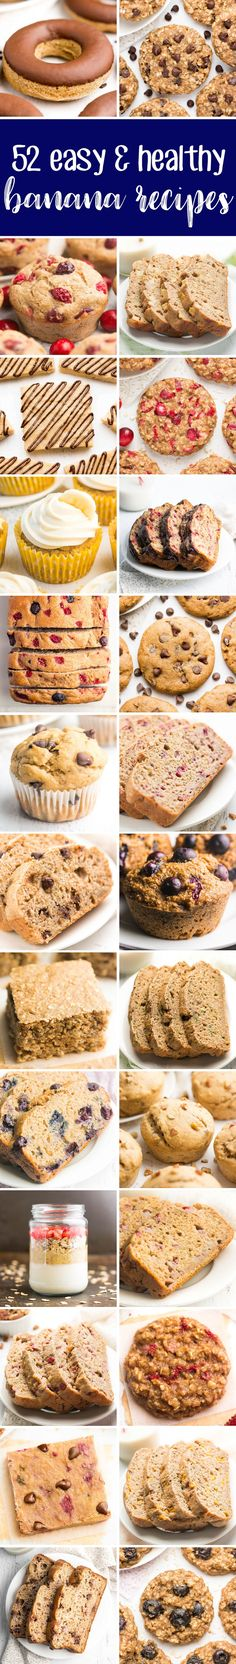 52 Easy & Healthy Banana Recipes -- all made with NO artificial ingredients, refined flour or sugar! And they taste AMAZING! I make at least one of these recipes every week! #healthy #banana #baking #recipes #cleaneating